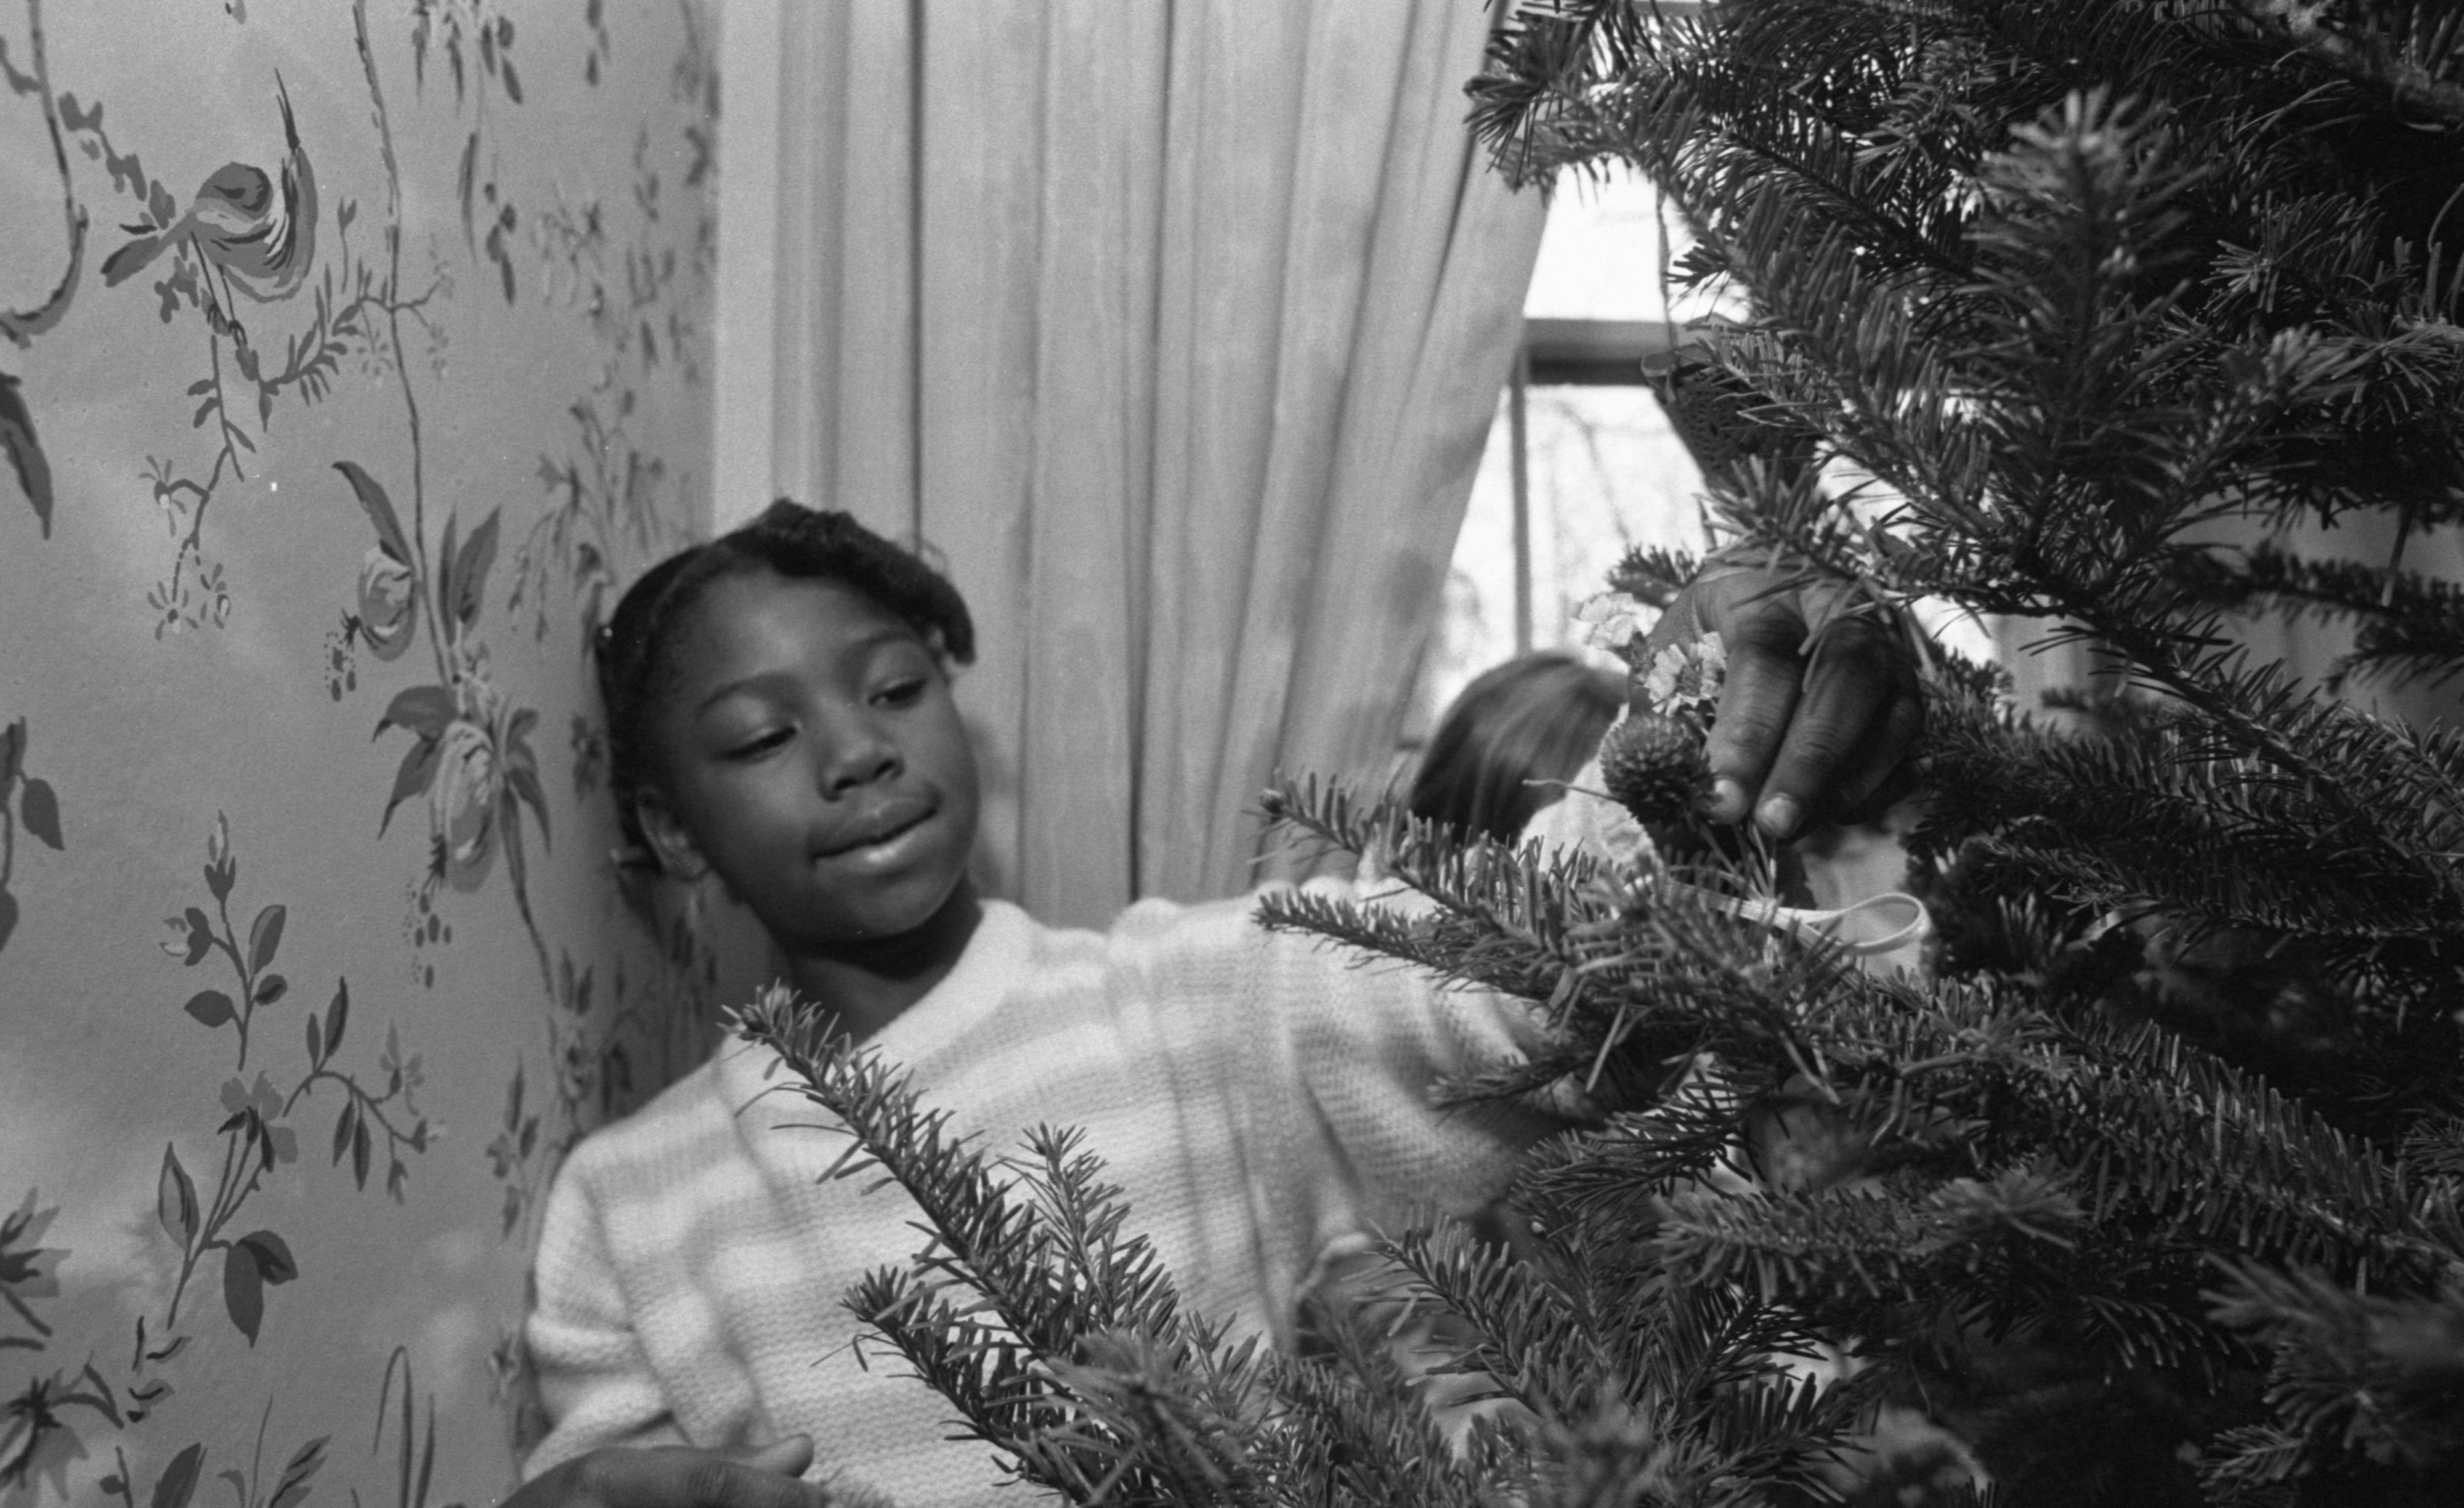 Elizabeth Hall Decorates A Christmas Tree At Cobblestone Farm, November 1989 image